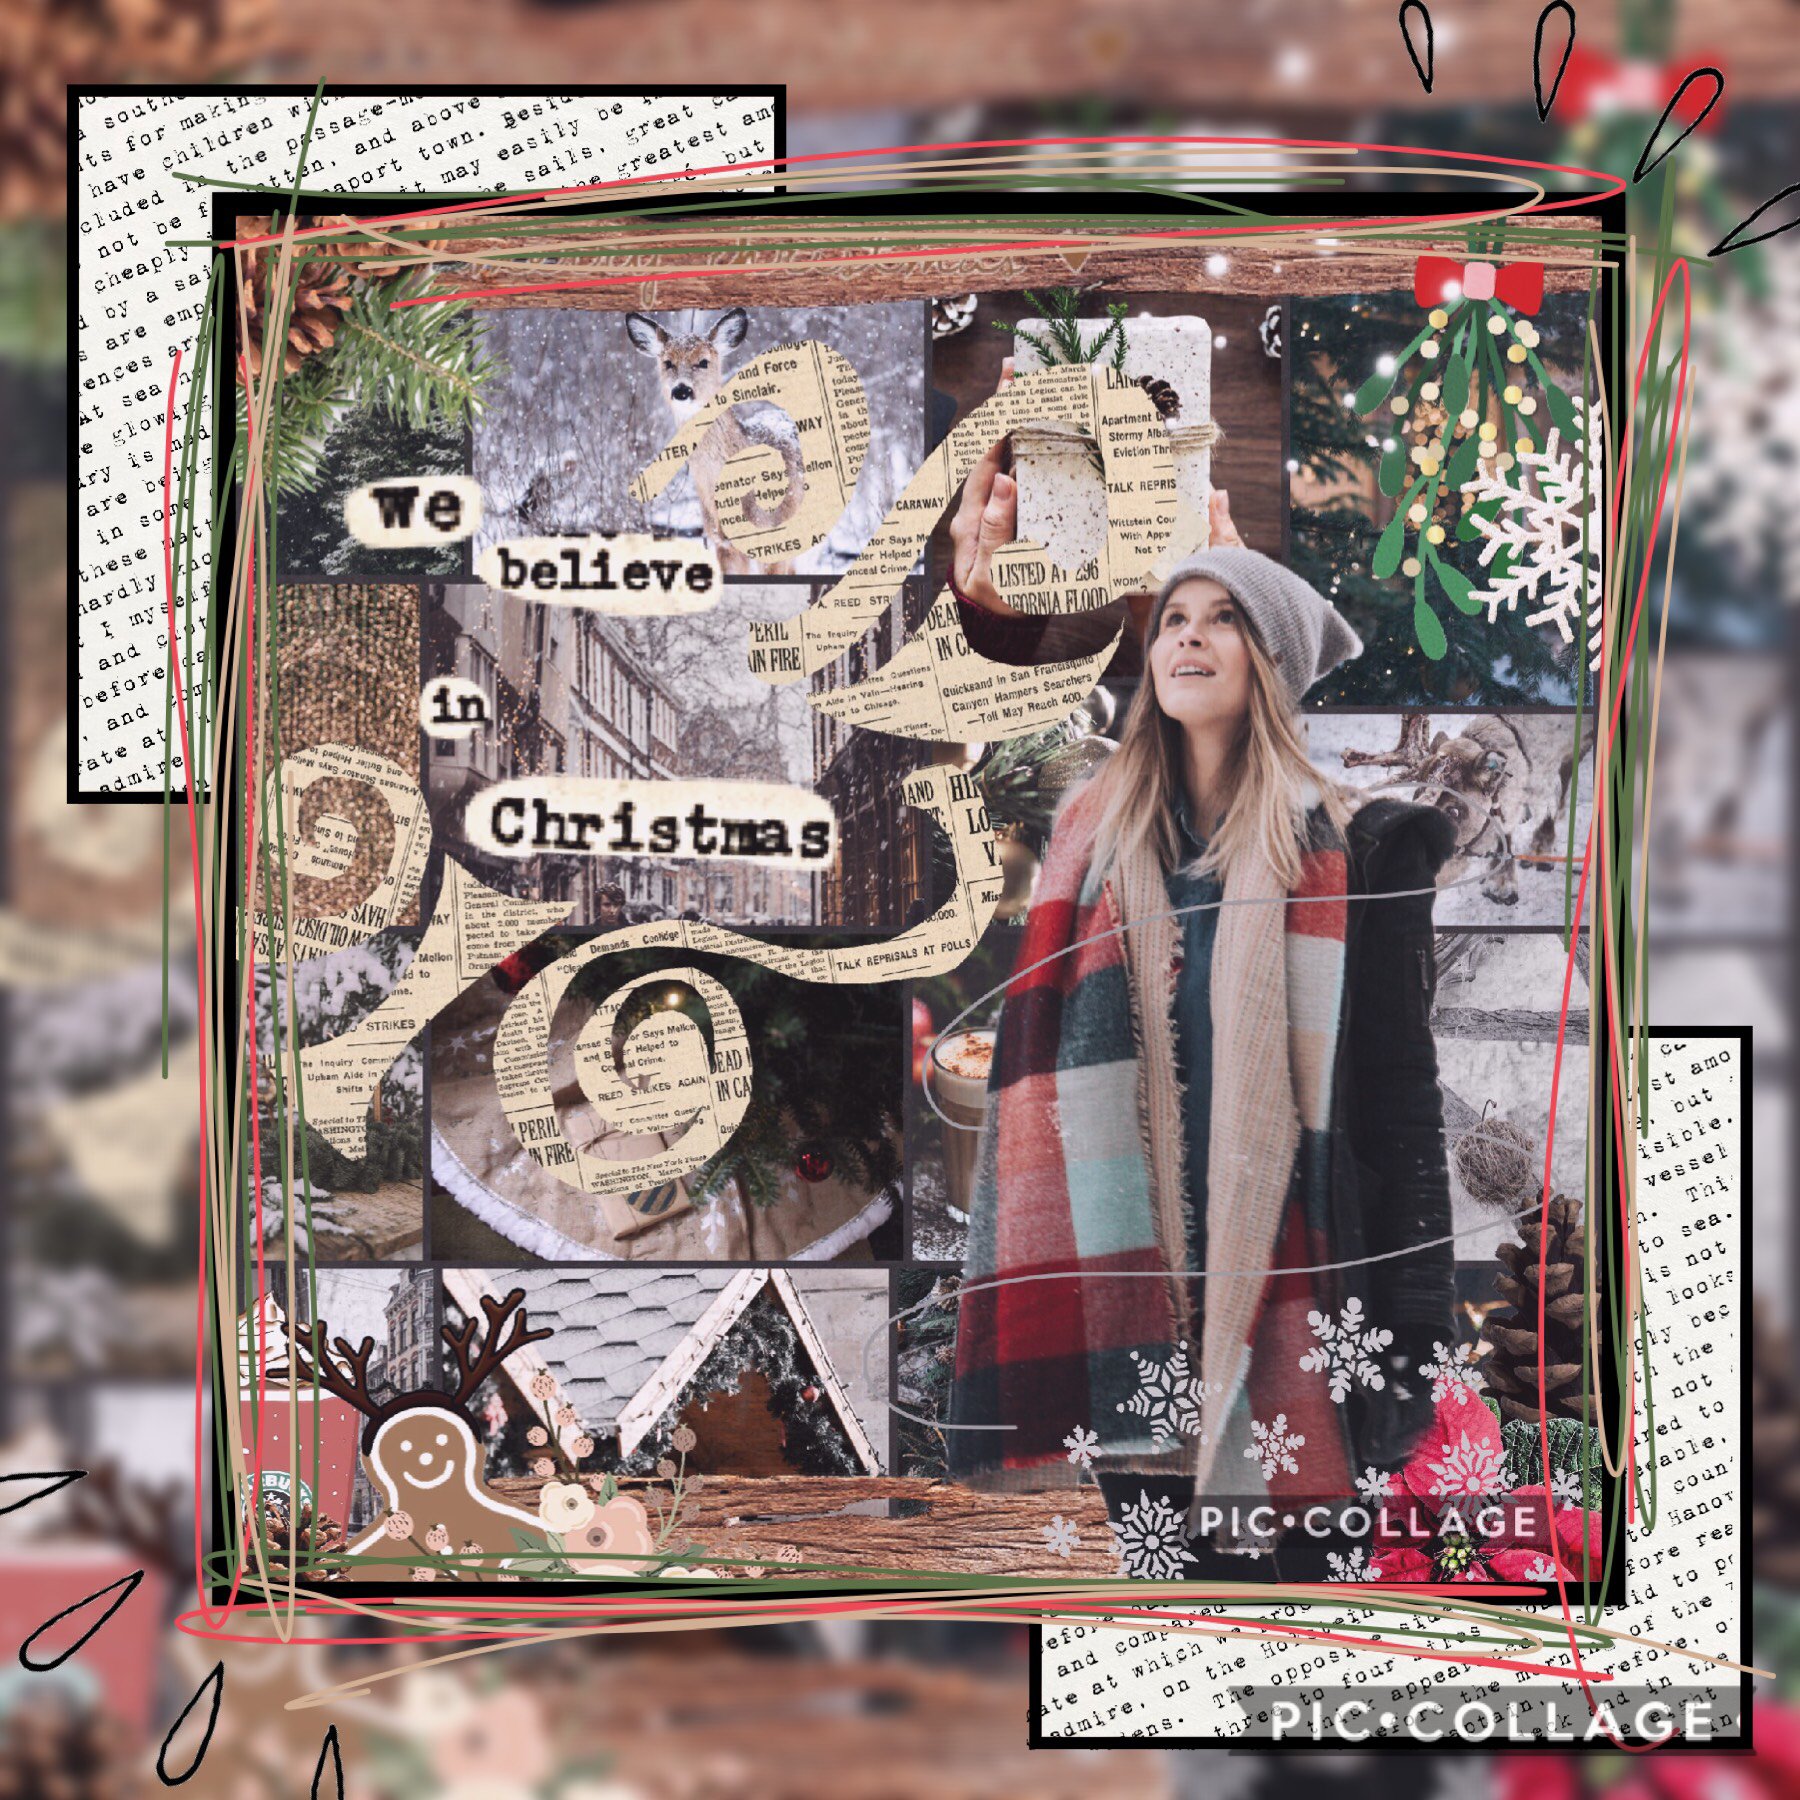 CHRISTMAS!!, I LOVE Christmas soooo much!! 😂😱❤️  This is my entry into Wunderlust's  contest (go enter it!) Have an amazing night everyone!